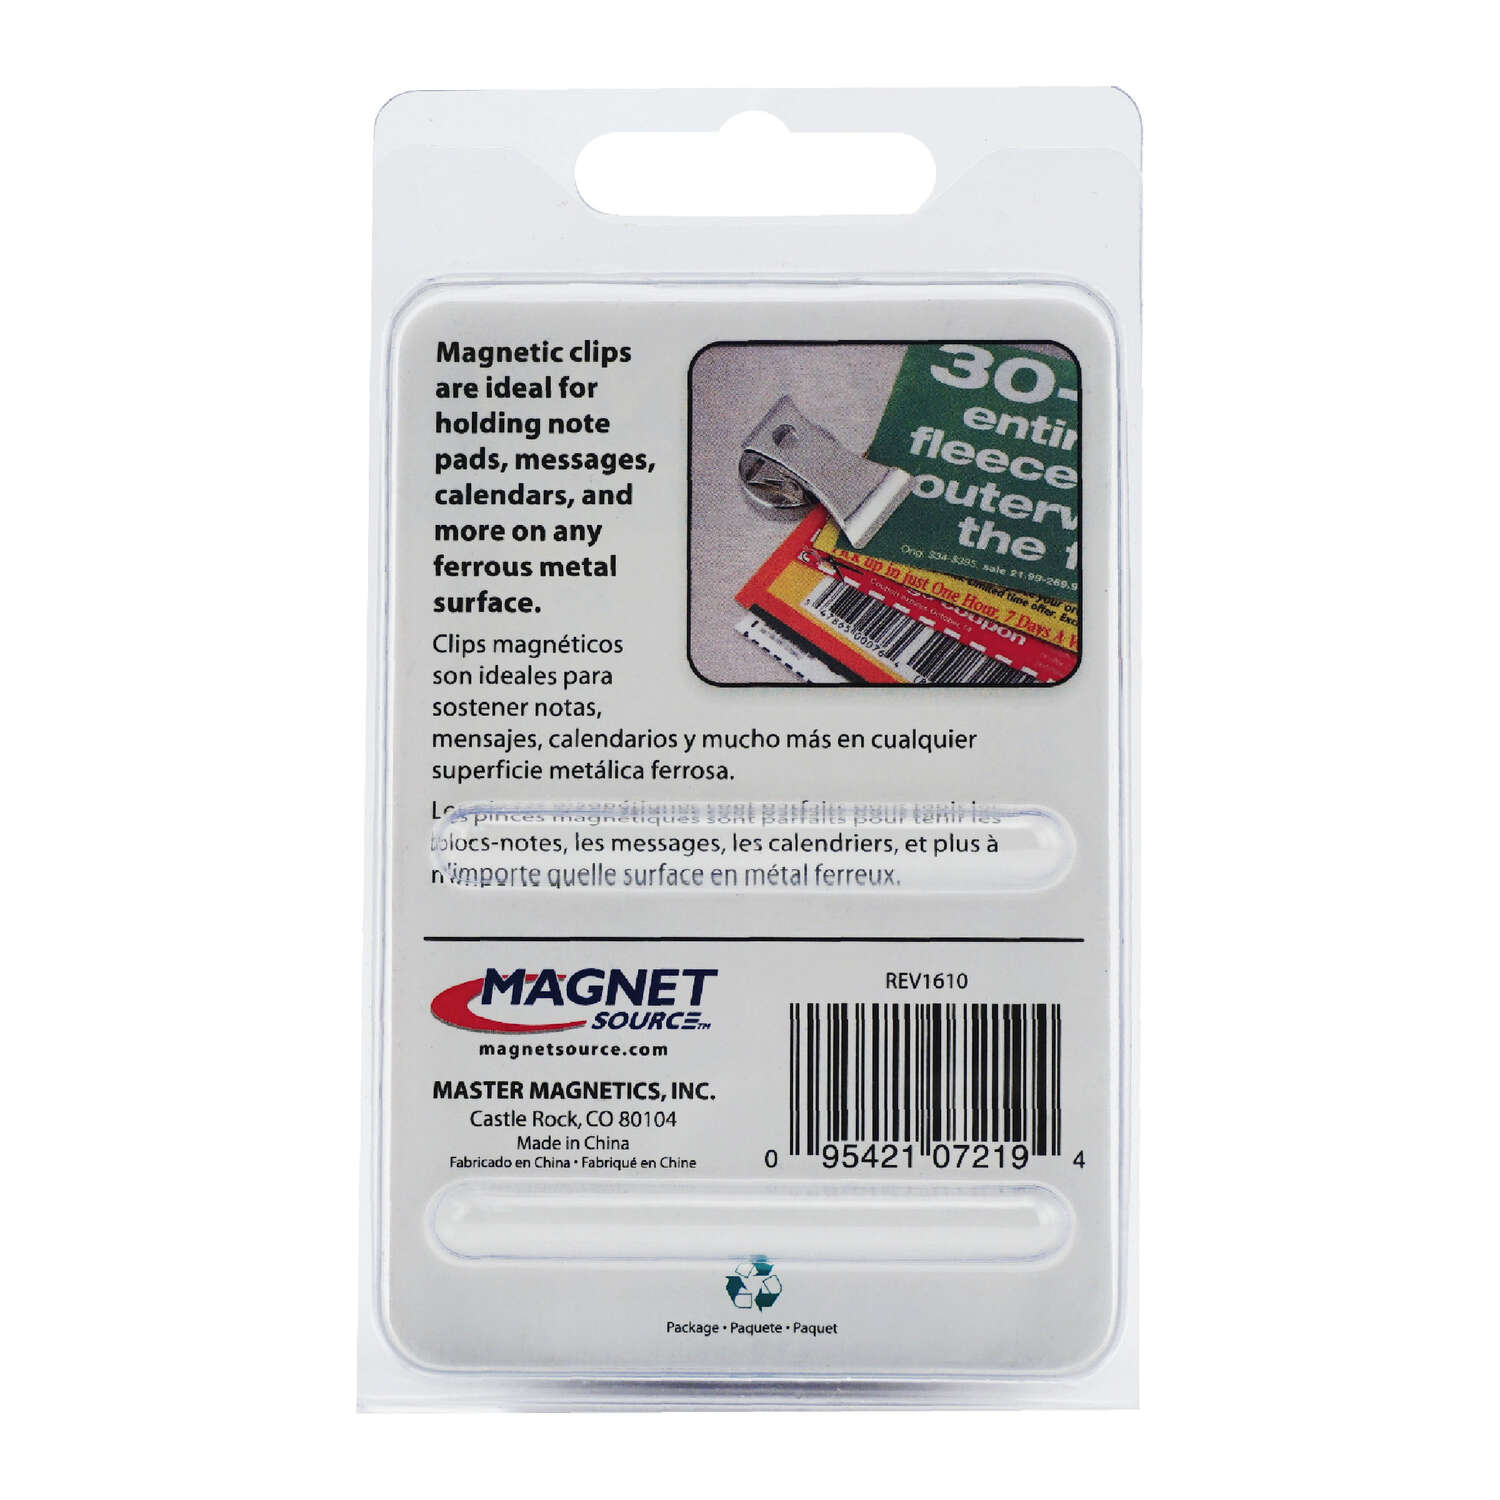 Master Magnetics  The Magnet Source  1.8 in. Ceramic  Magnetic Clips  Clip  3.4 MGOe 3 lb. pull 2 pc